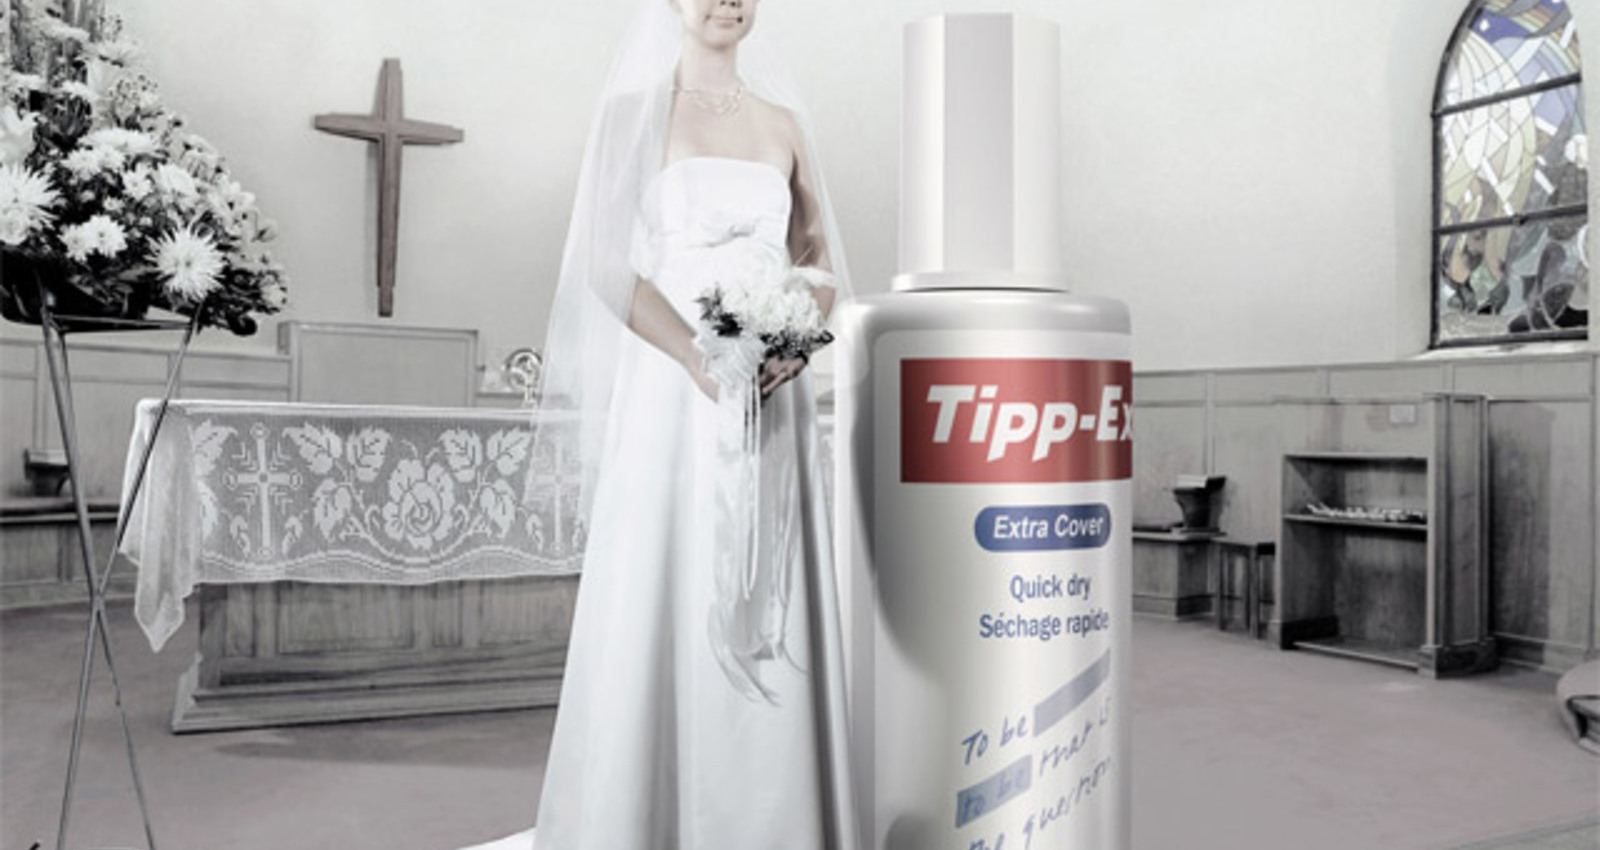 Tippex - Made a Mistake?